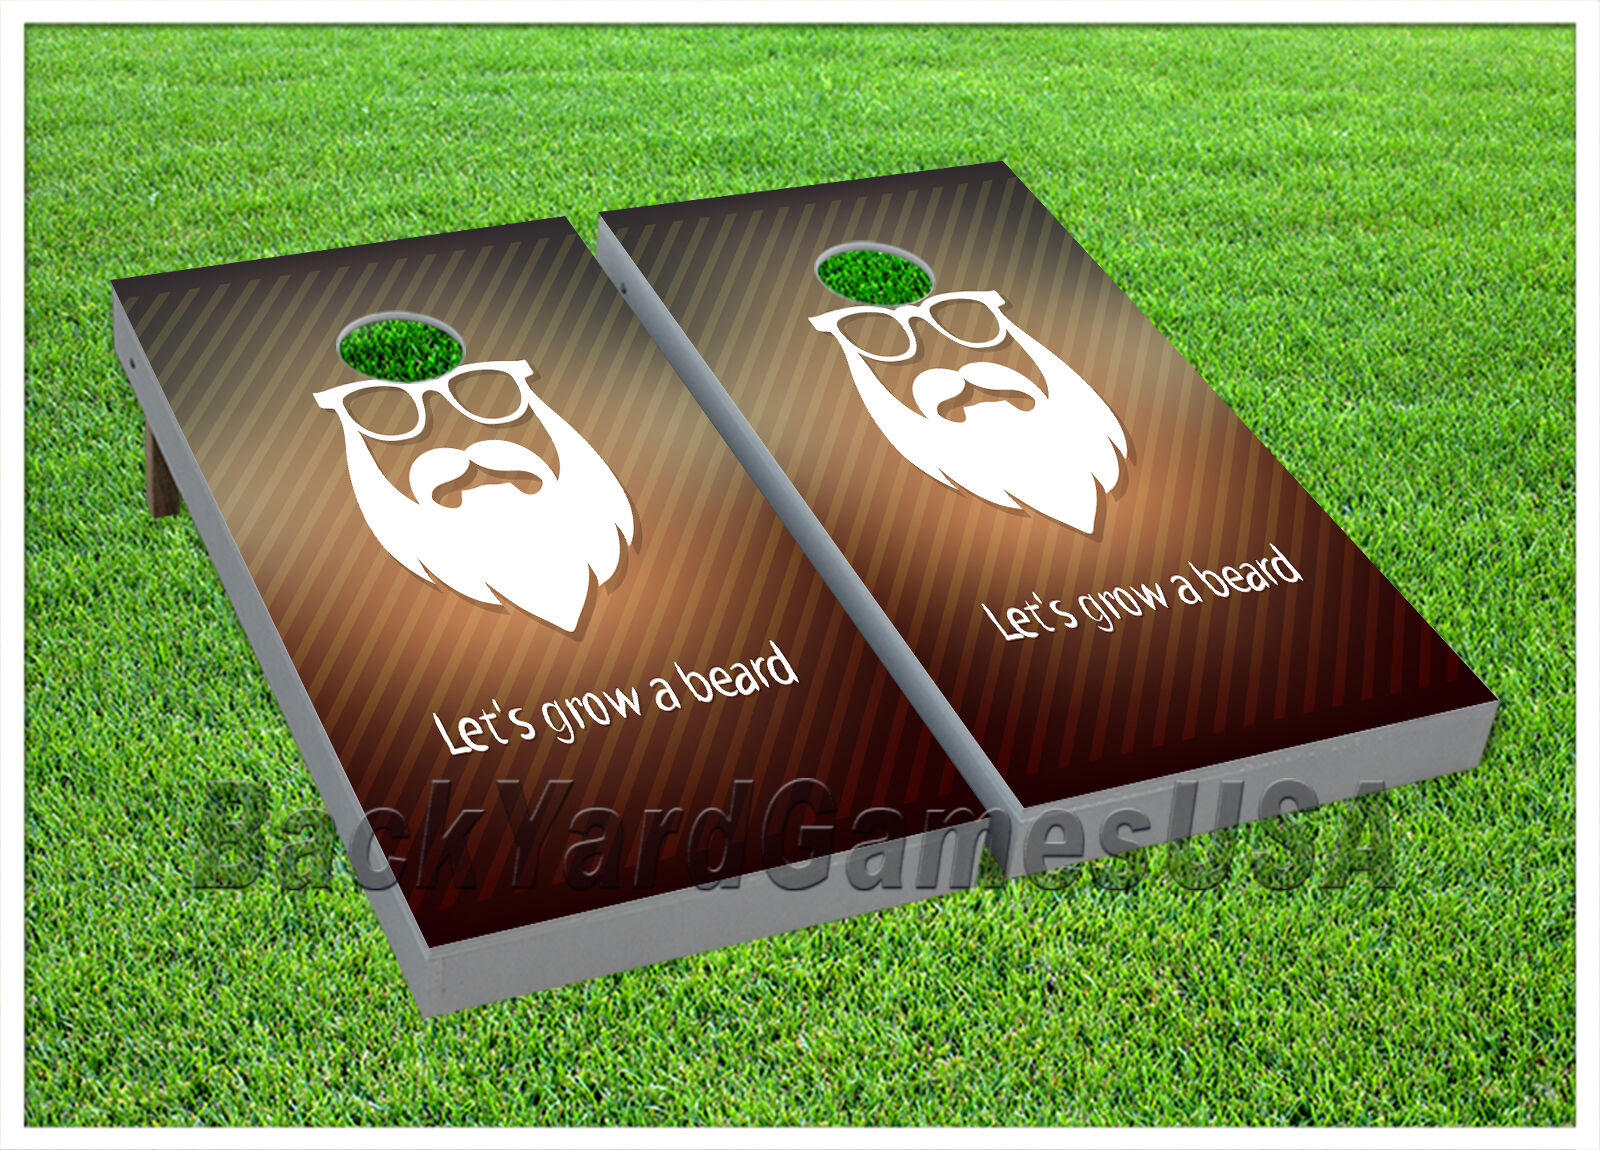 VINYL WRAPS CORNHOLE BEANBAG Lets Grow a Beard White and gold Boards 933